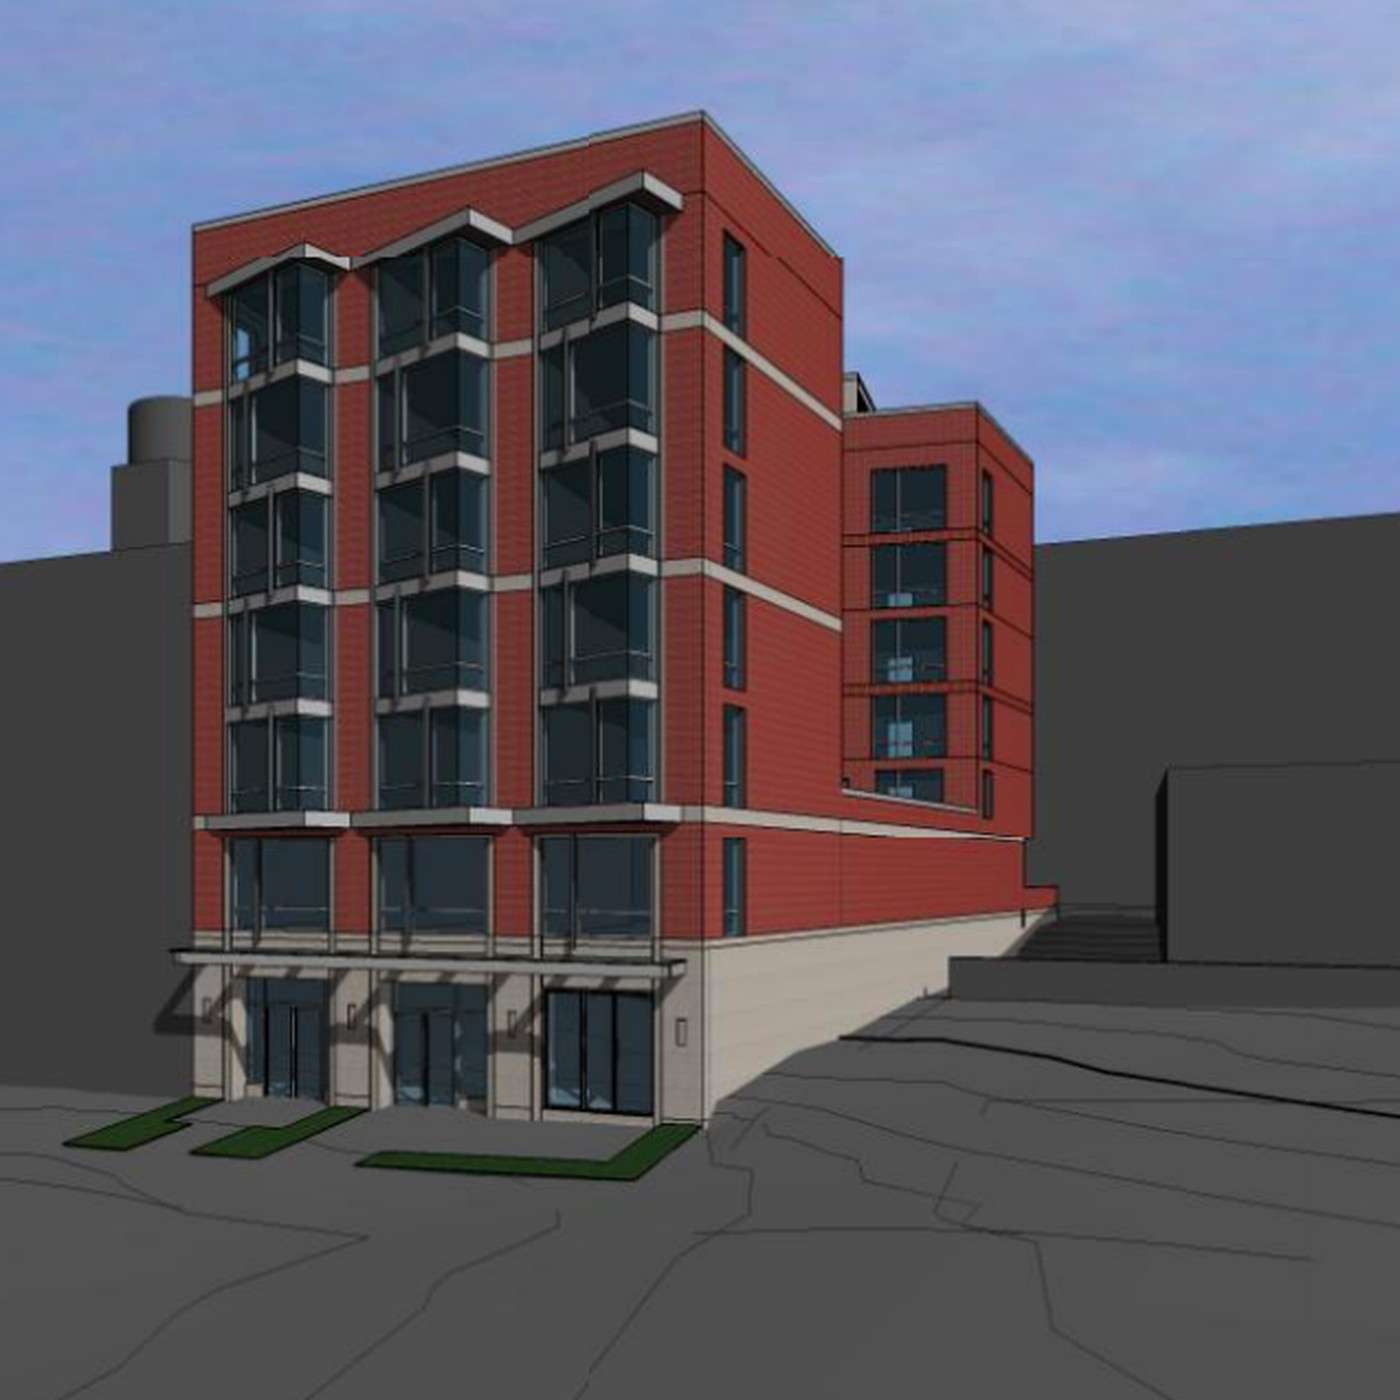 In Tenleytown, plans for 41-unit mixed-use project - Curbed DC